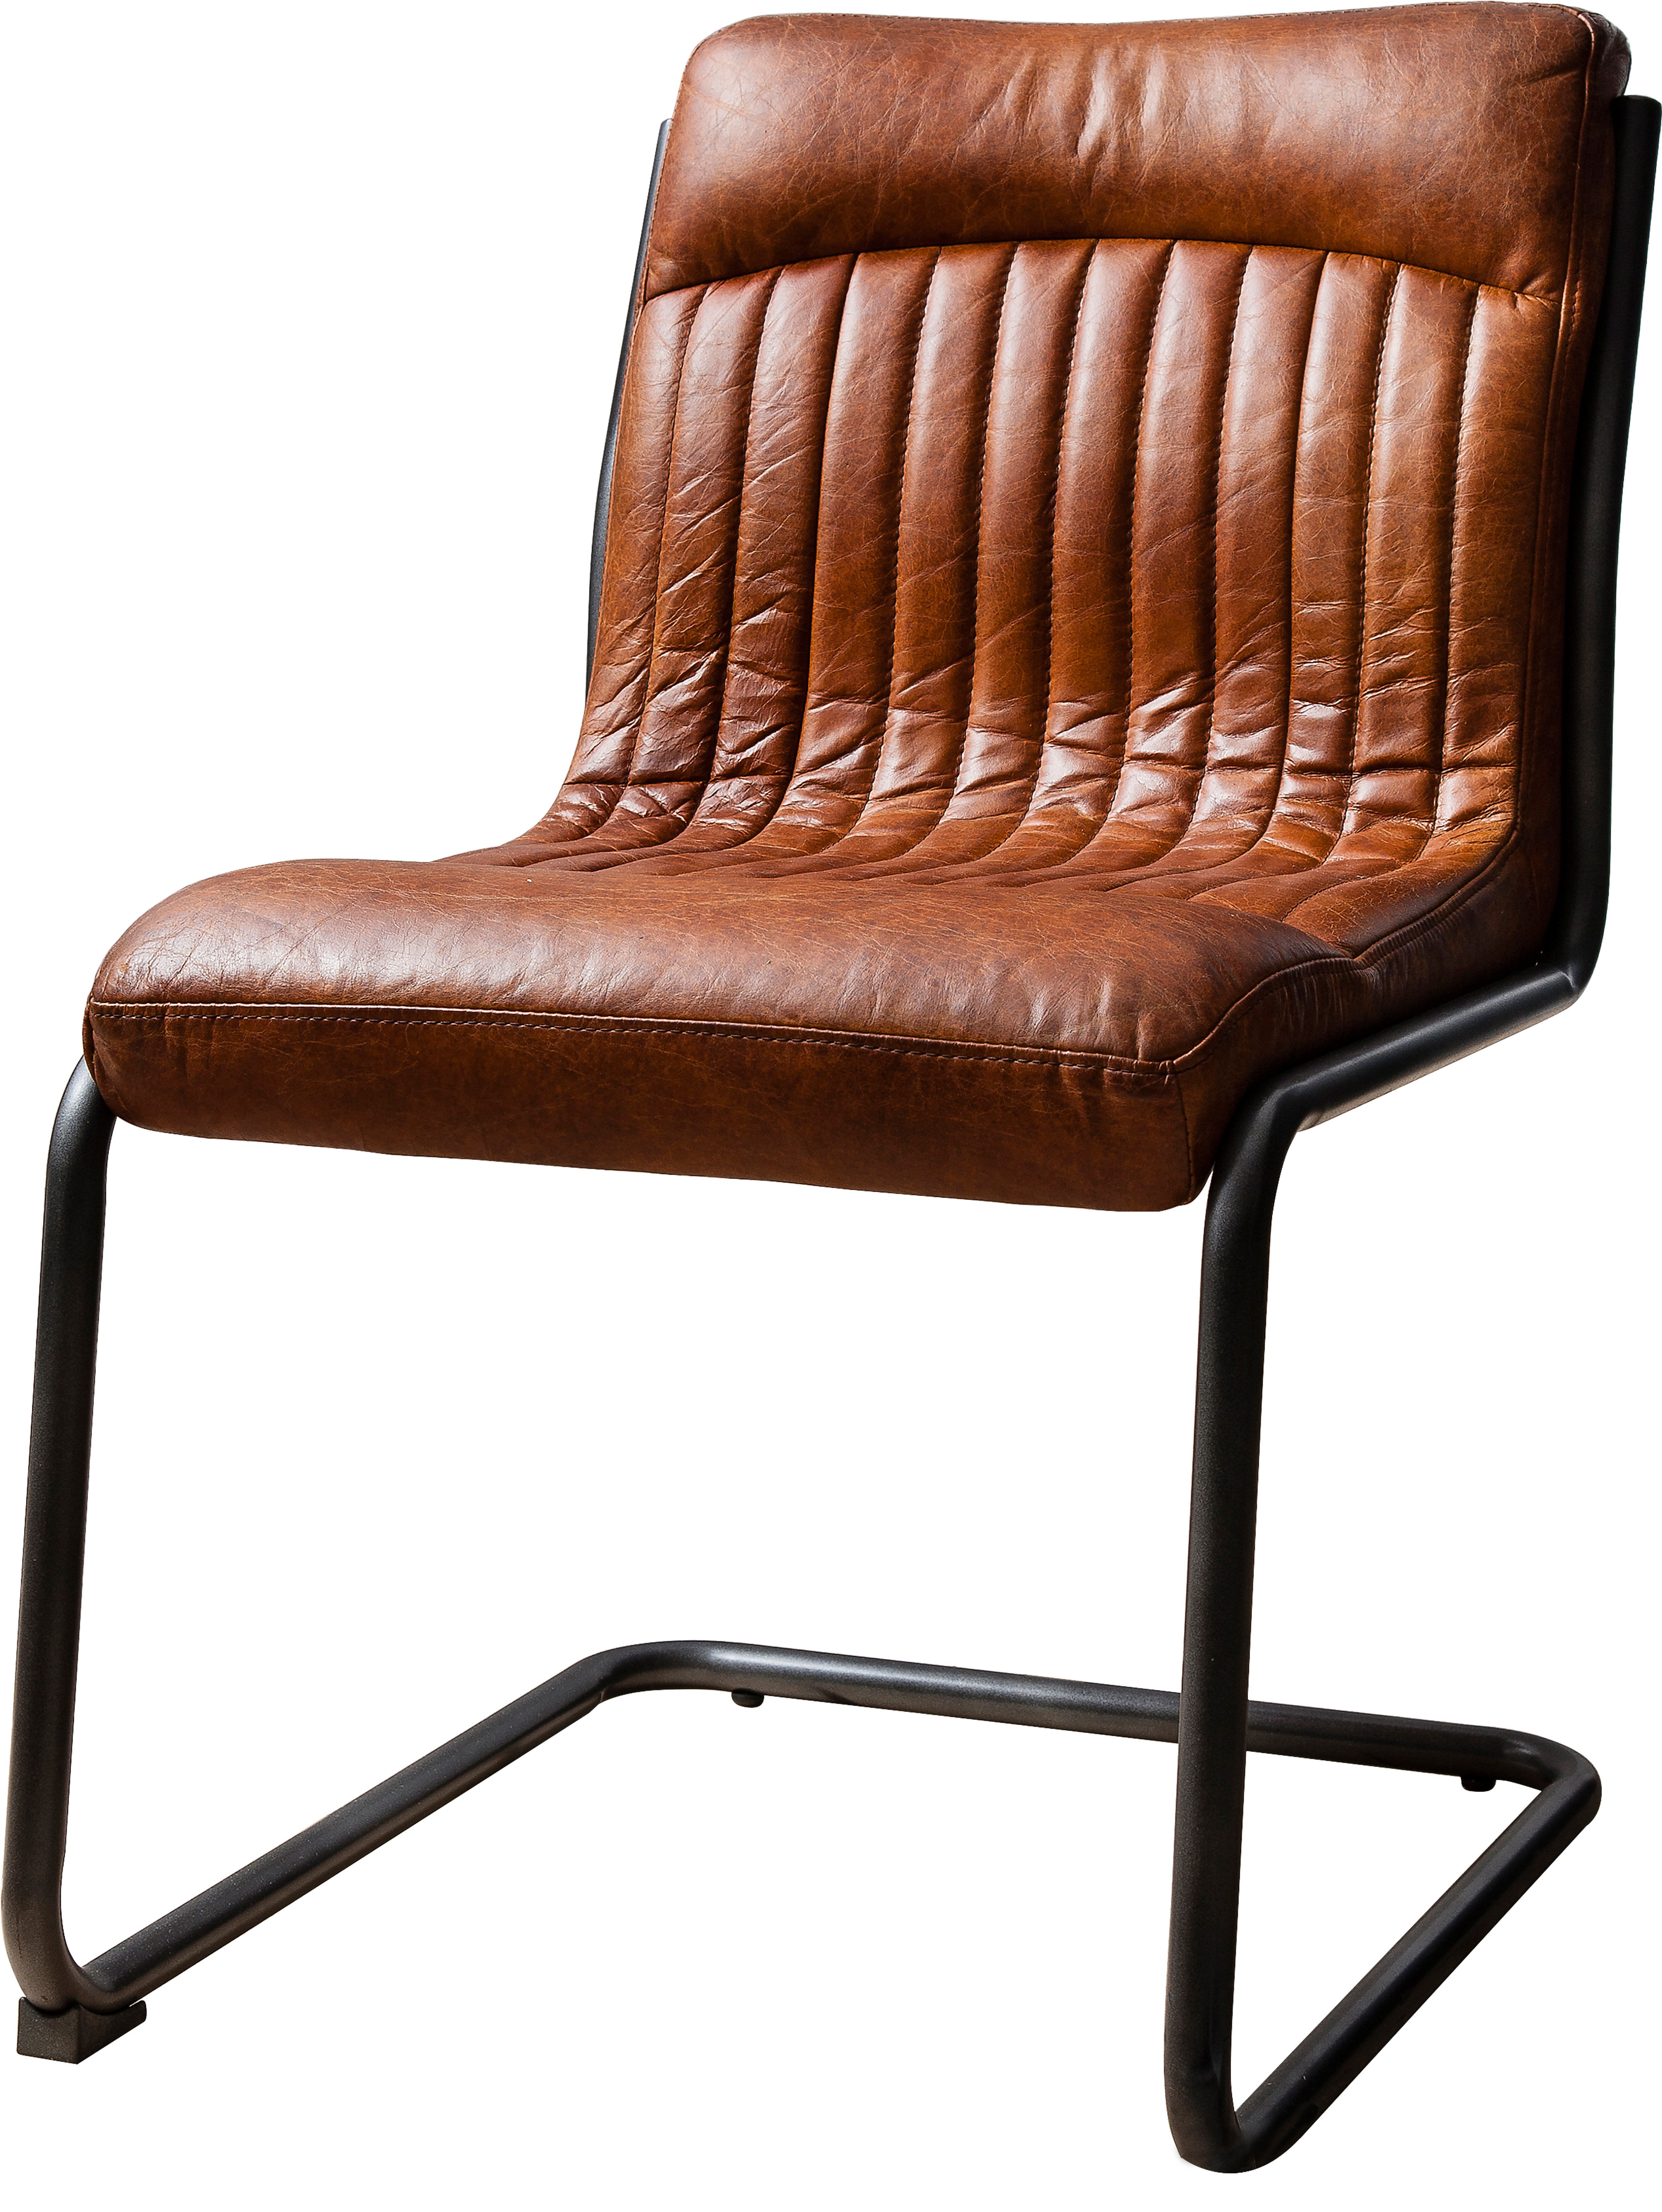 Chisholm Genuine Leather Upholstered Dining Chair